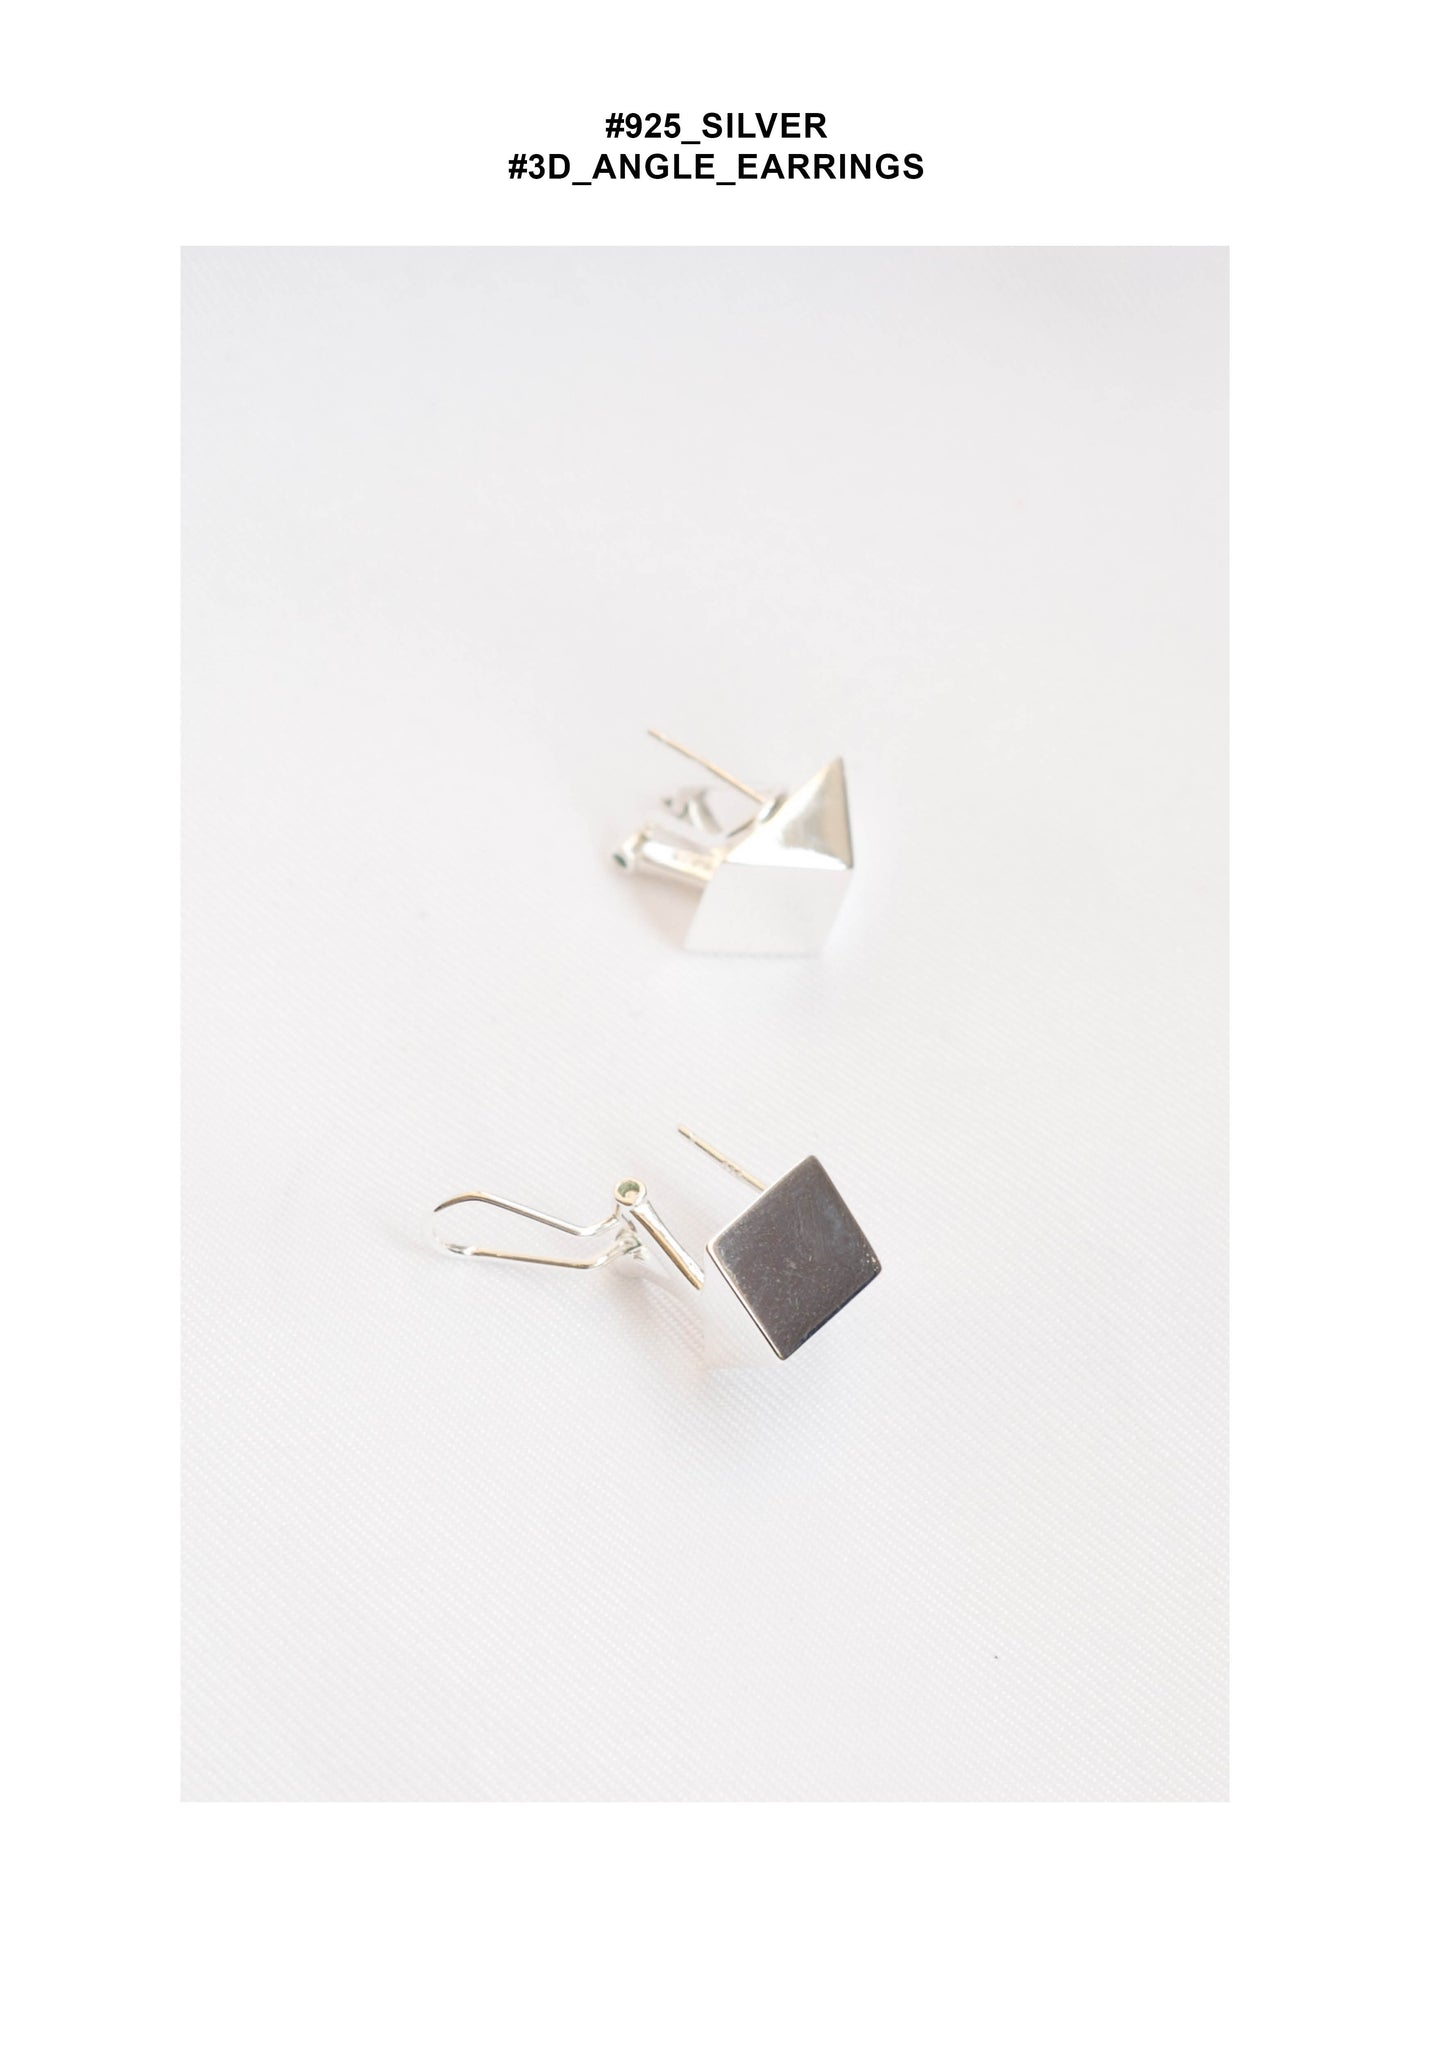 925 Silver 3D Angle Earrings - whoami